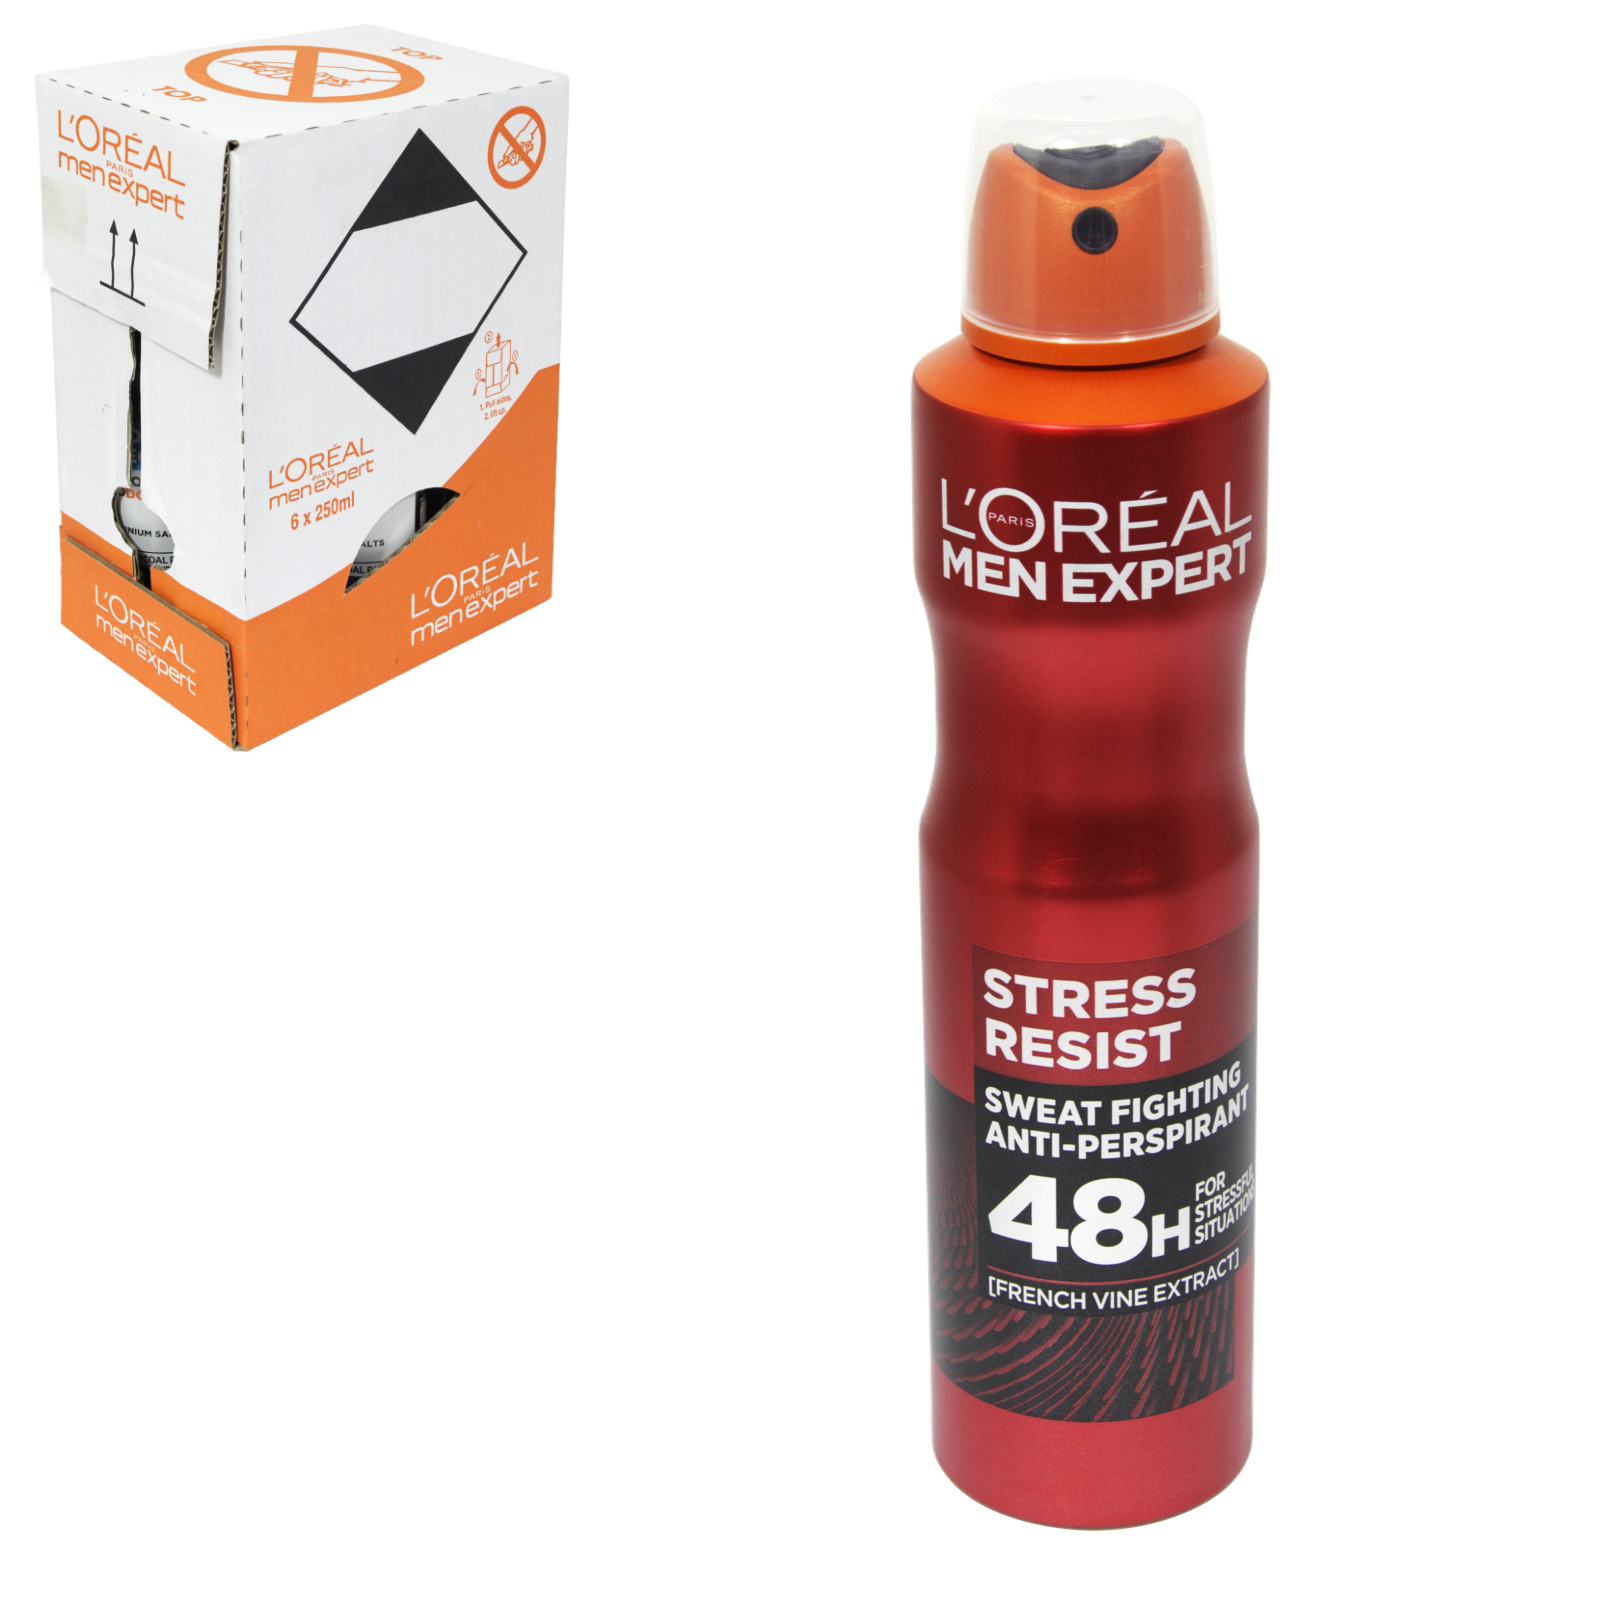 LOREAL MEN EXPERT DEO 250ML INVINCIBLE 96 HOURS NON STOP EXTREME PROTECTION X6